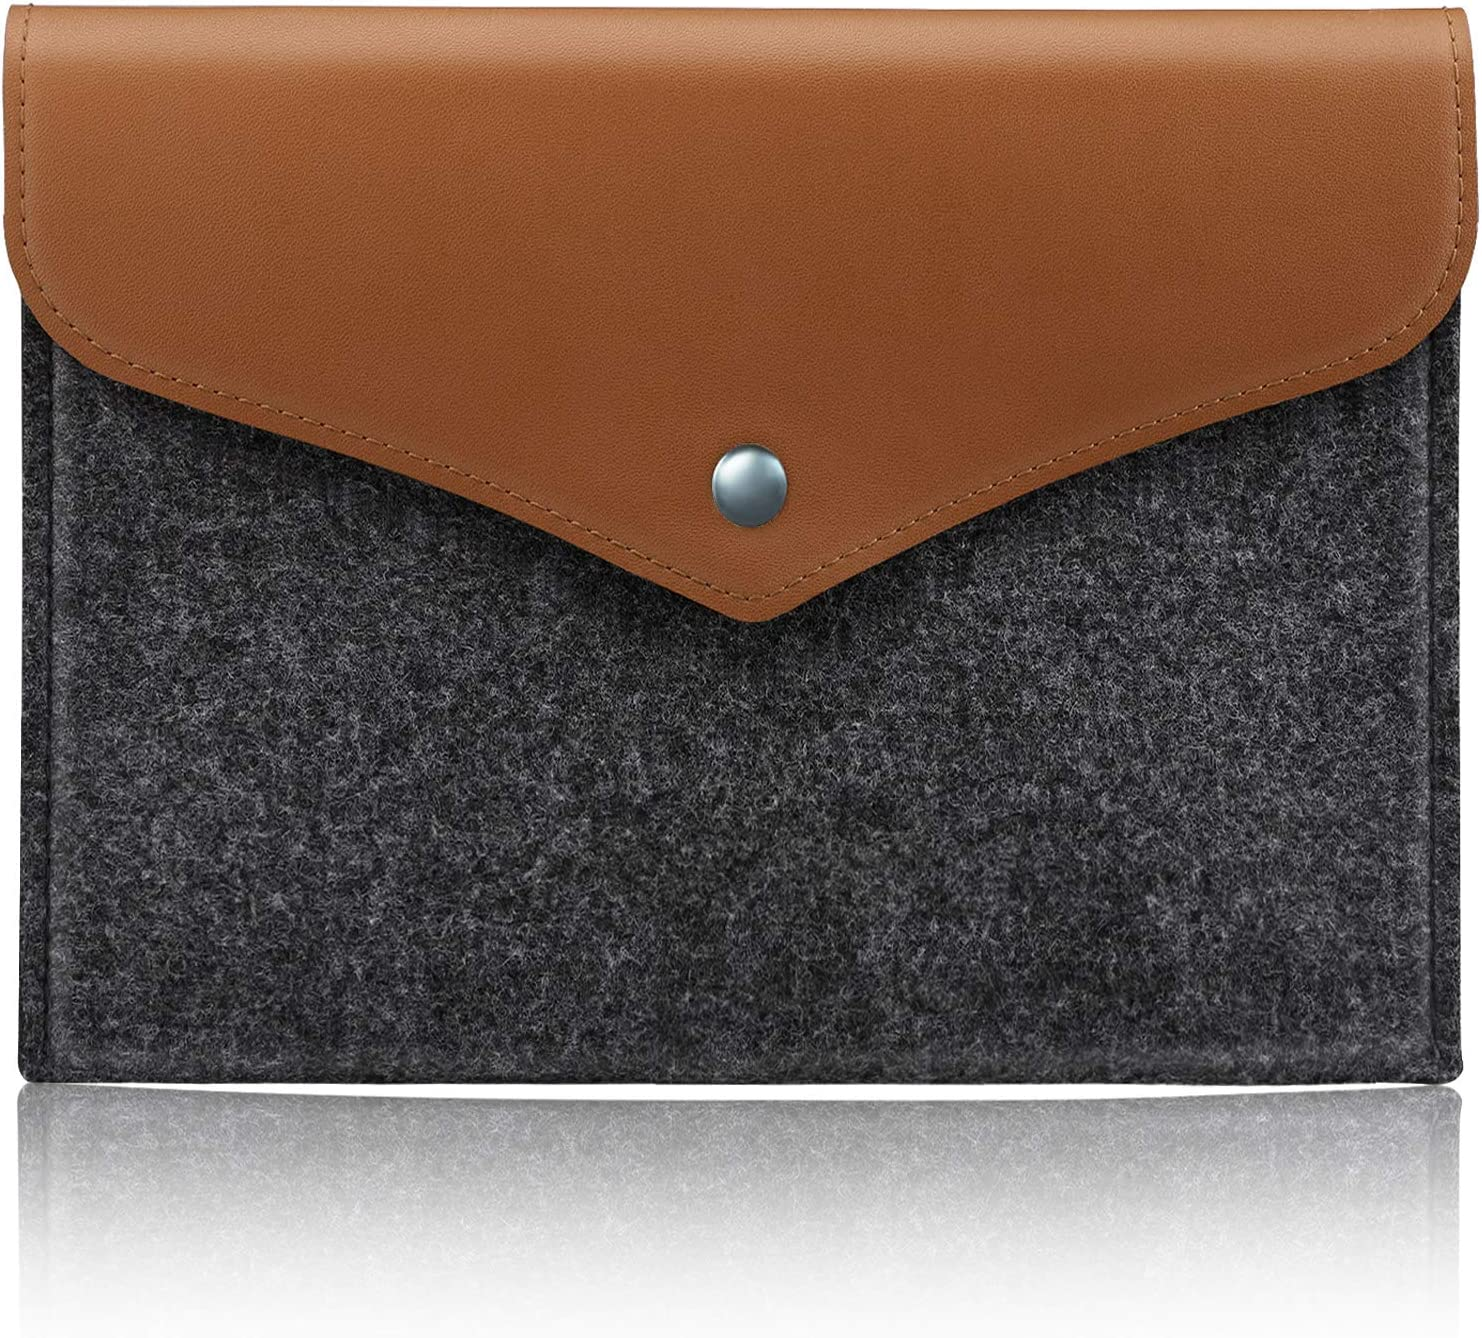 Dadanism 7-8 Inch Tablet Sleeve Case Compatible with Kindle & All-New Amazon Fire 7 2019/2017, Felt & PU Leather Carrying Bag Fit Fire HD 8 2018, Fire 7/Fire HD 8 Kids Edition - Light Grey & Brown